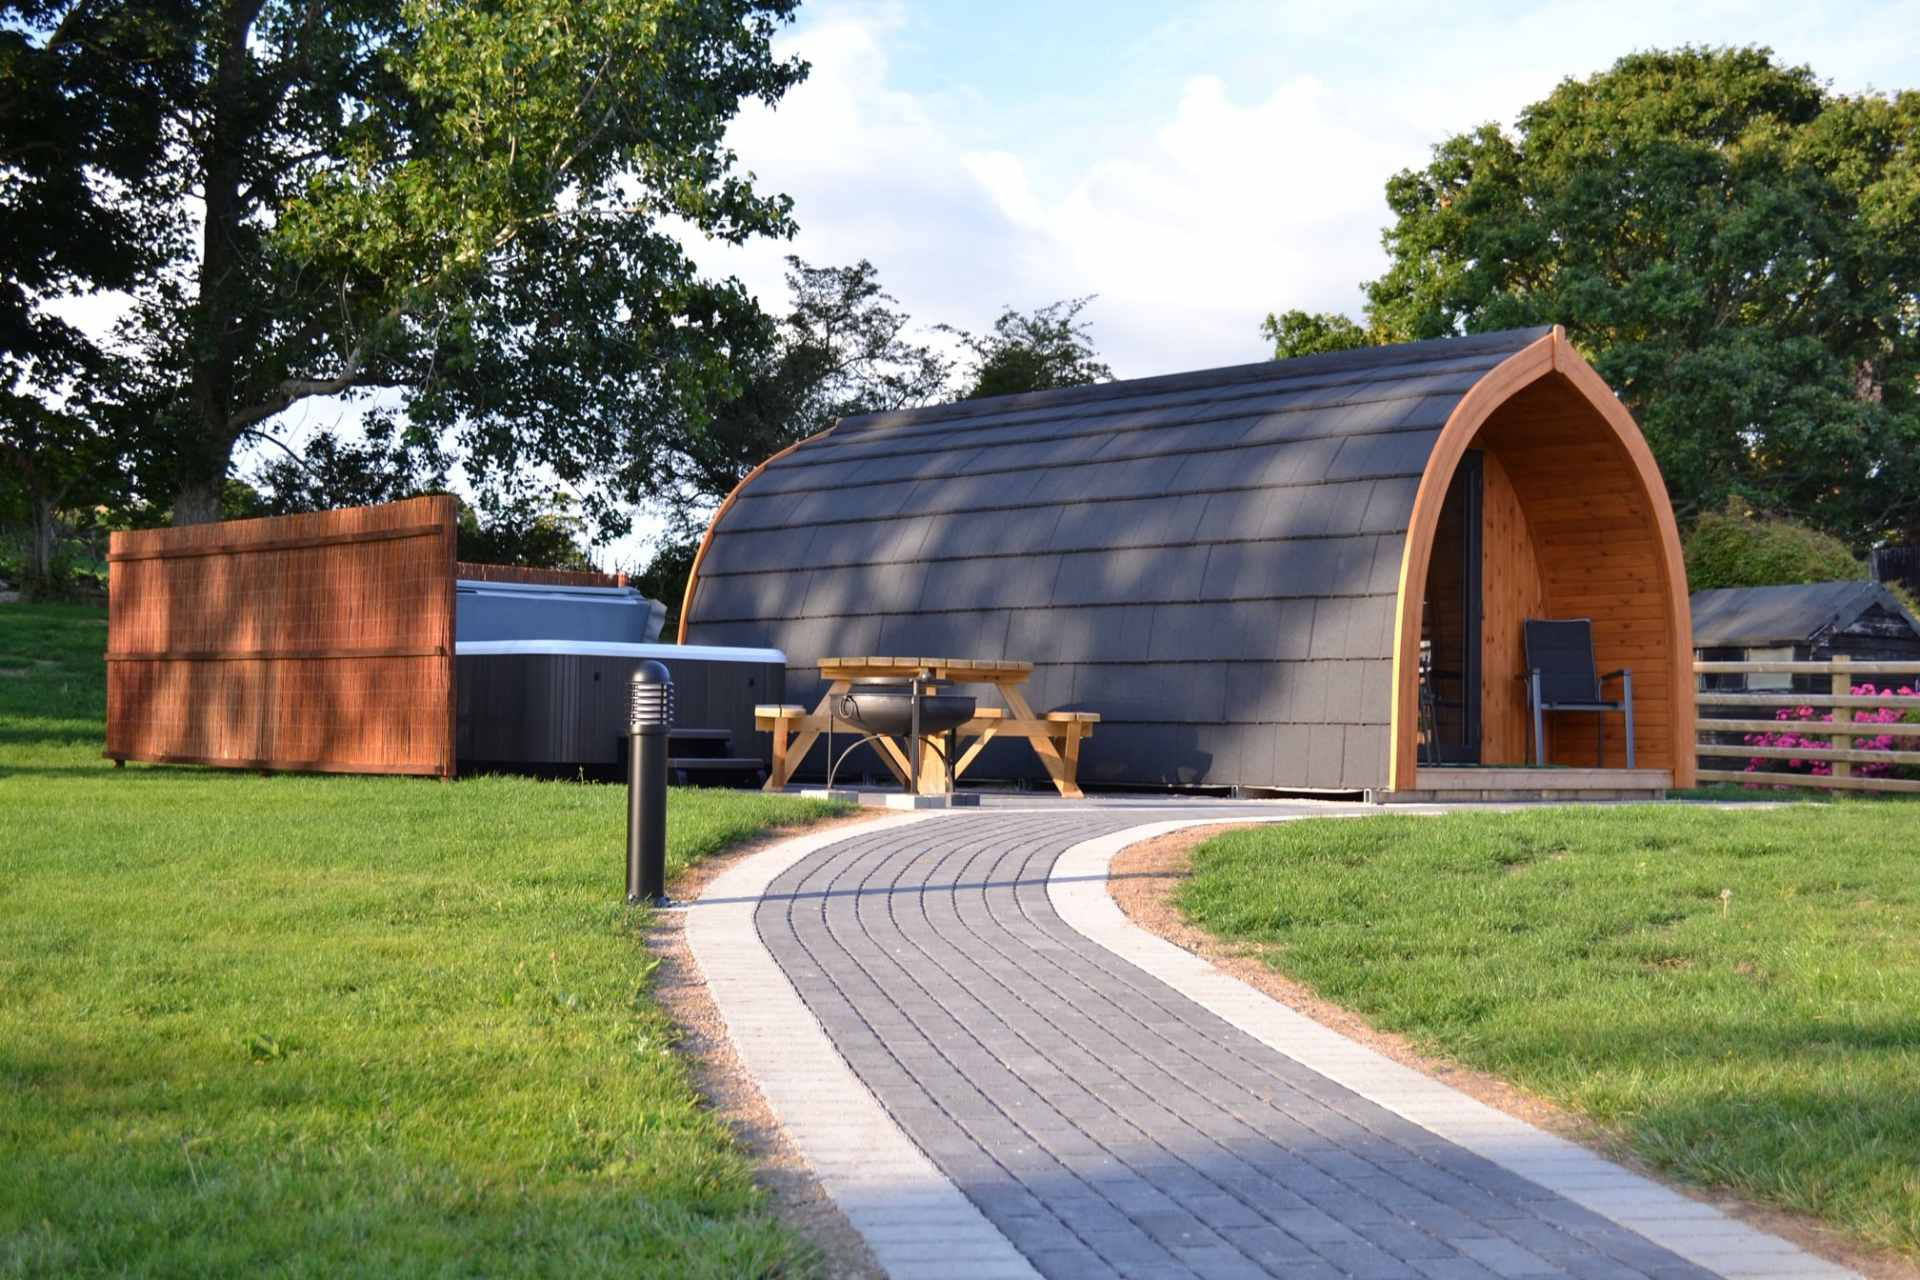 glamping-pod-with-hot-tub-picnic-table-and-bbq-at-wern-farm-glamping